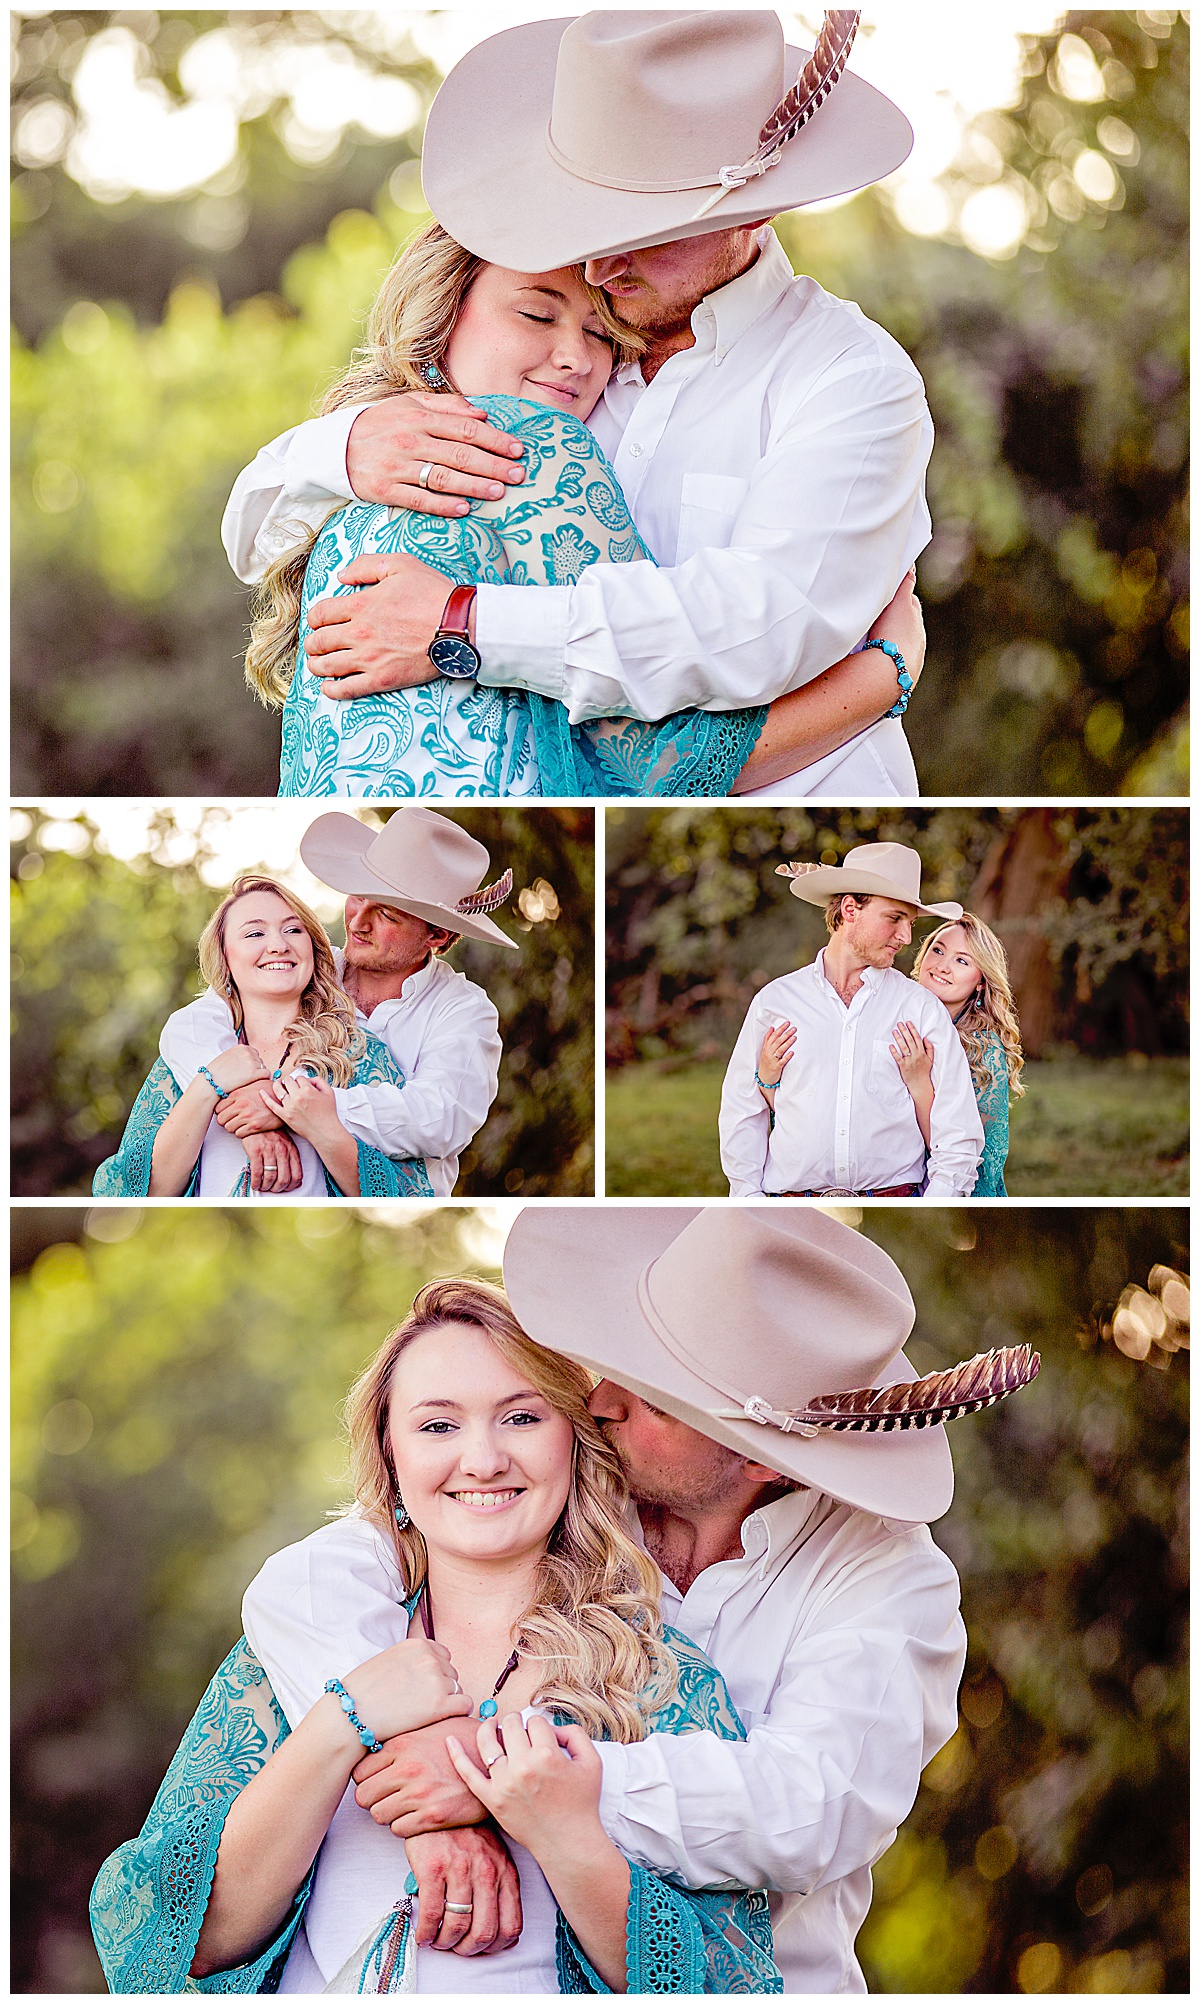 Rustic-Engagement-Session-Horse-Texas-Sunset-Carly-Barton-Photography_0013.jpg